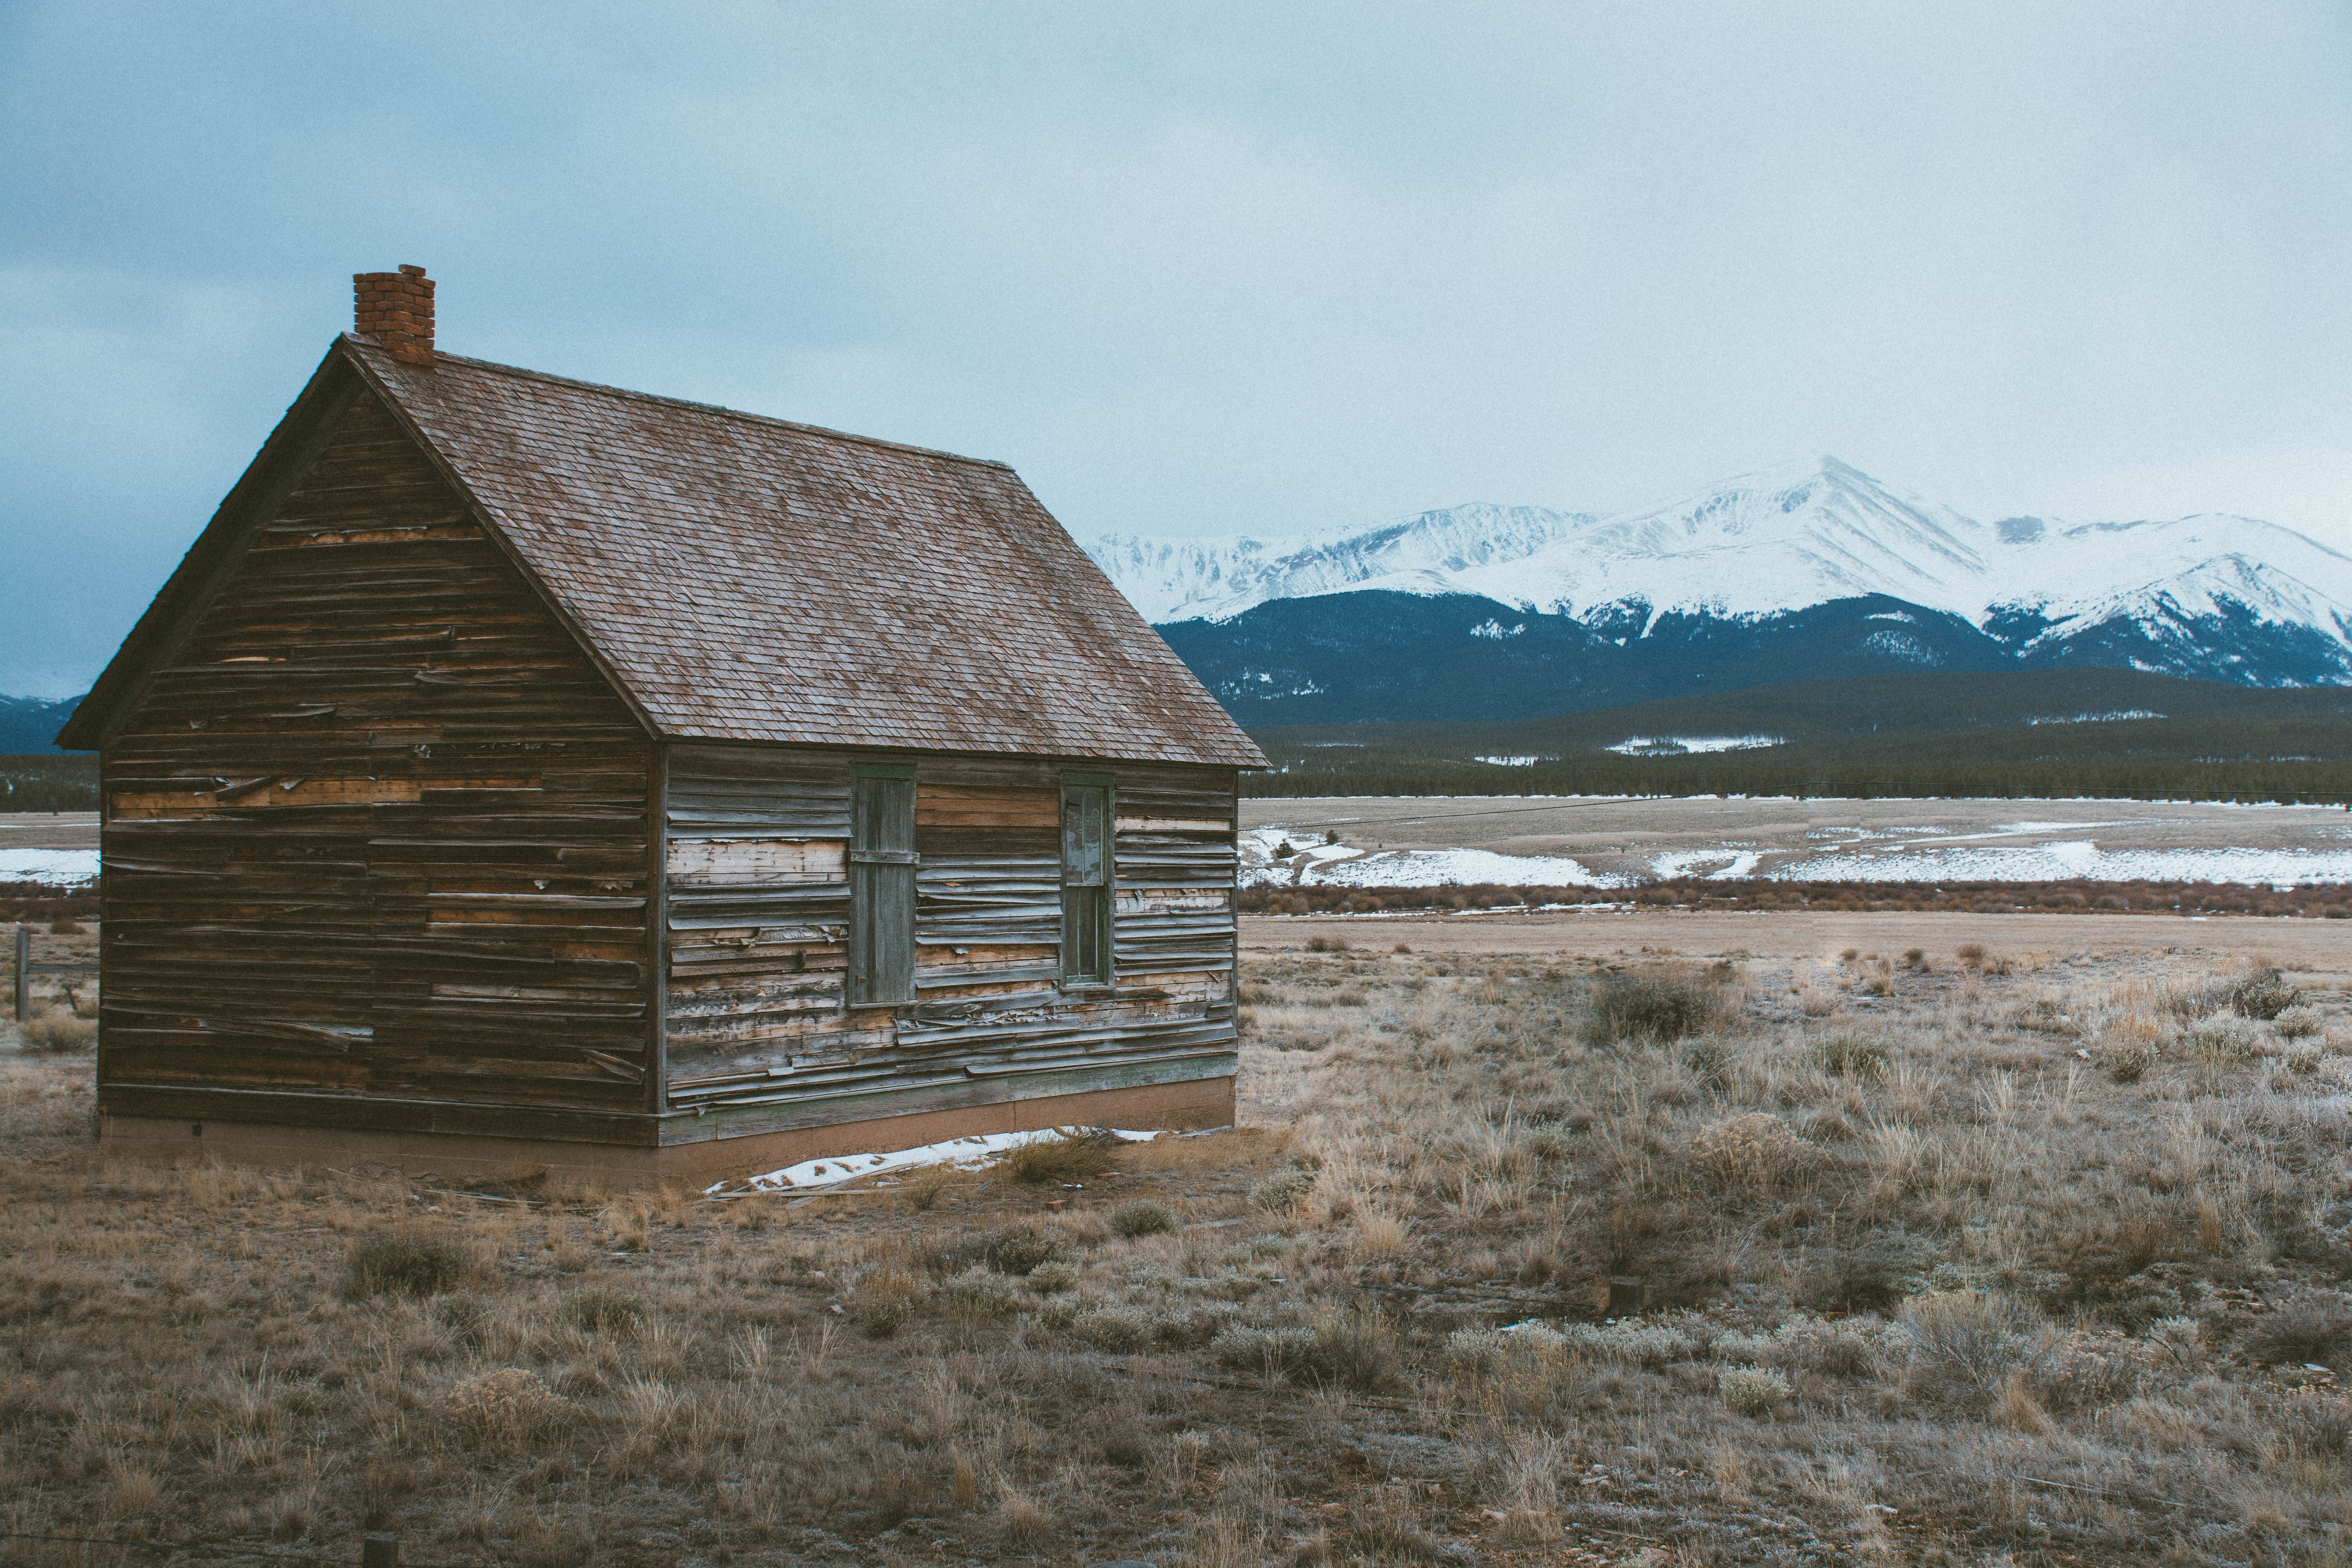 Free Unsplash photo from Cole Mader